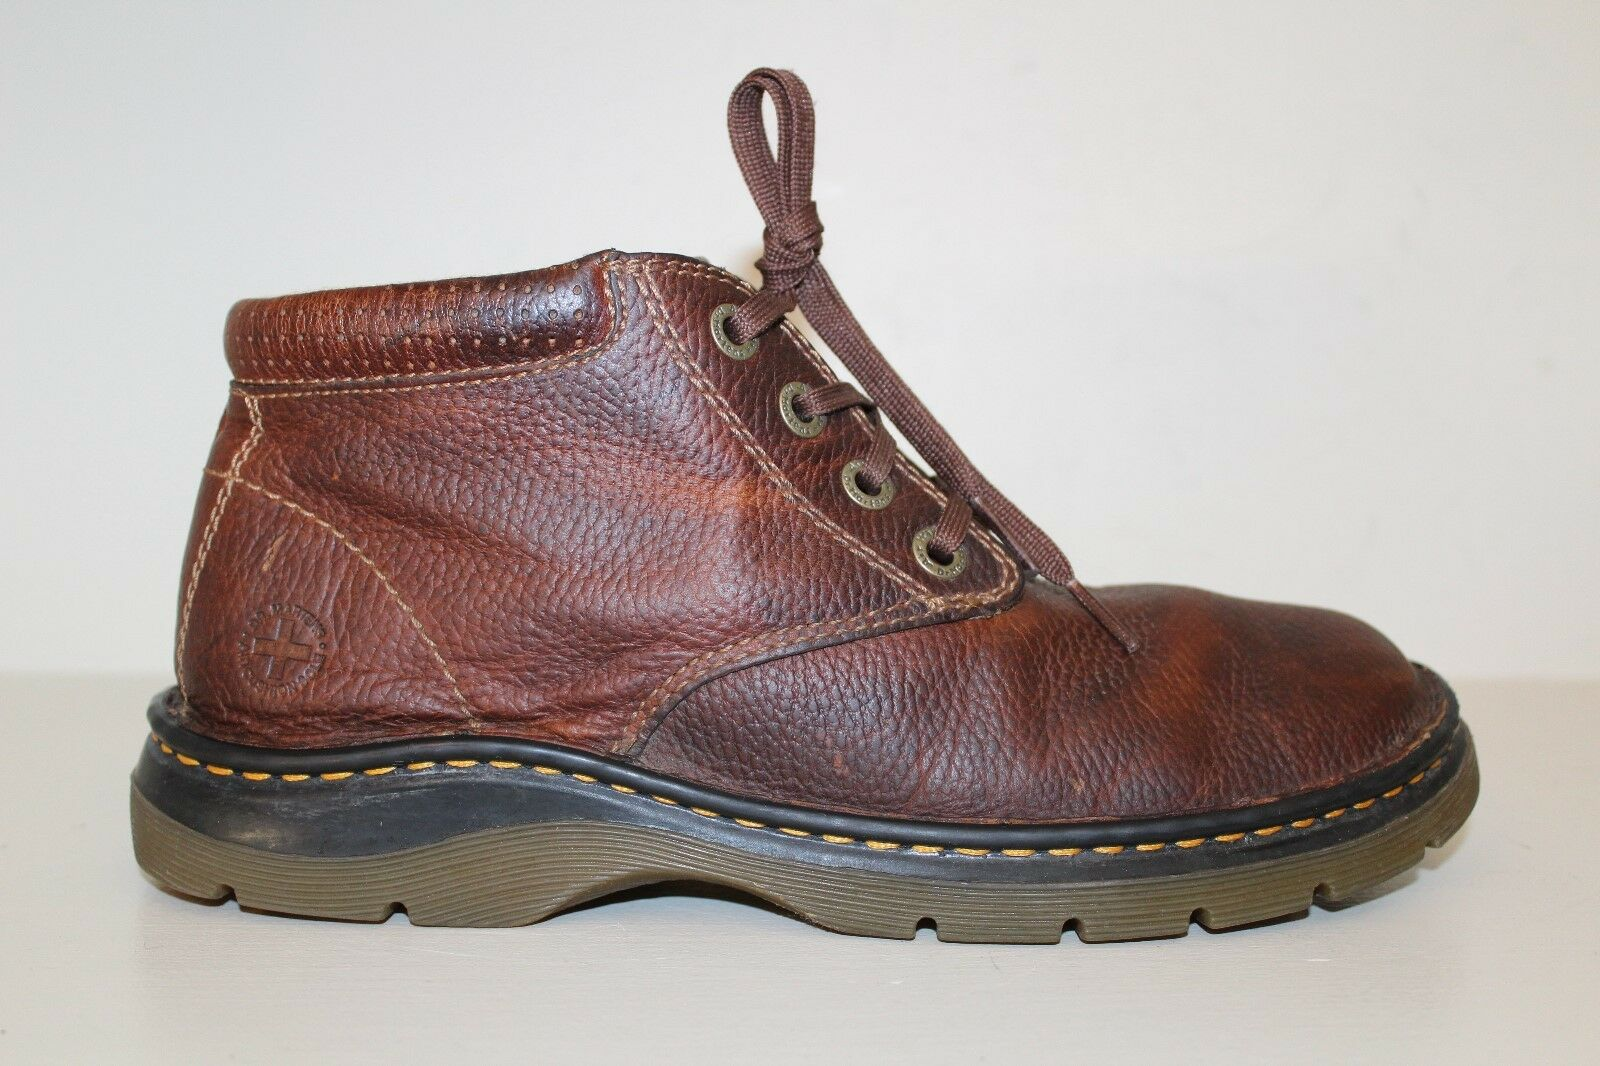 Dr Martens Mens Ankle Boot Size 8 Rico 4 Eye Desert Brown Leather Chukka shoes